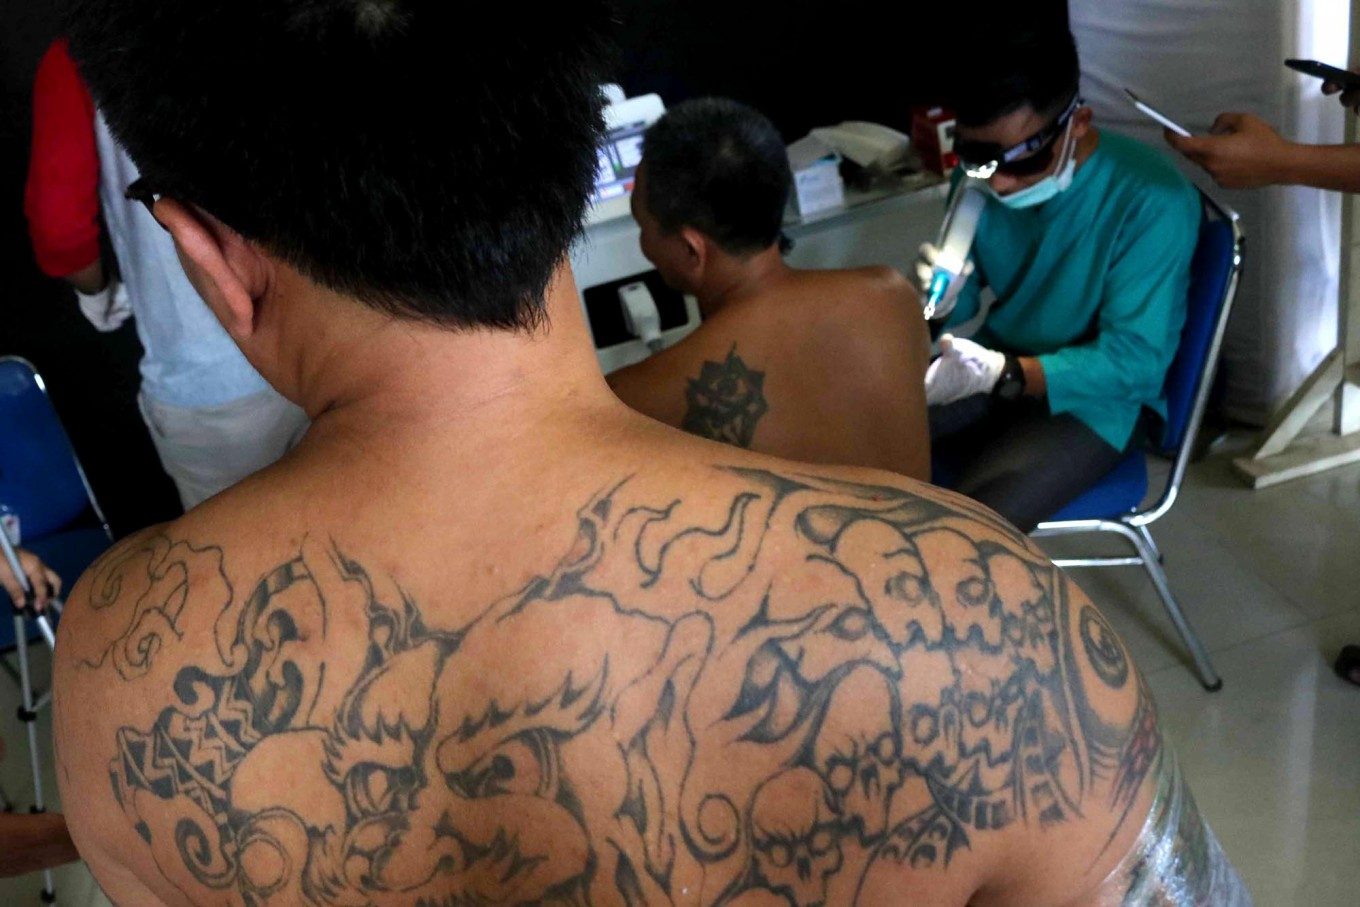 Next in line: People with tattoos wait for their turn to have their tattoos removed. JP/Maksum Nur Fauzan